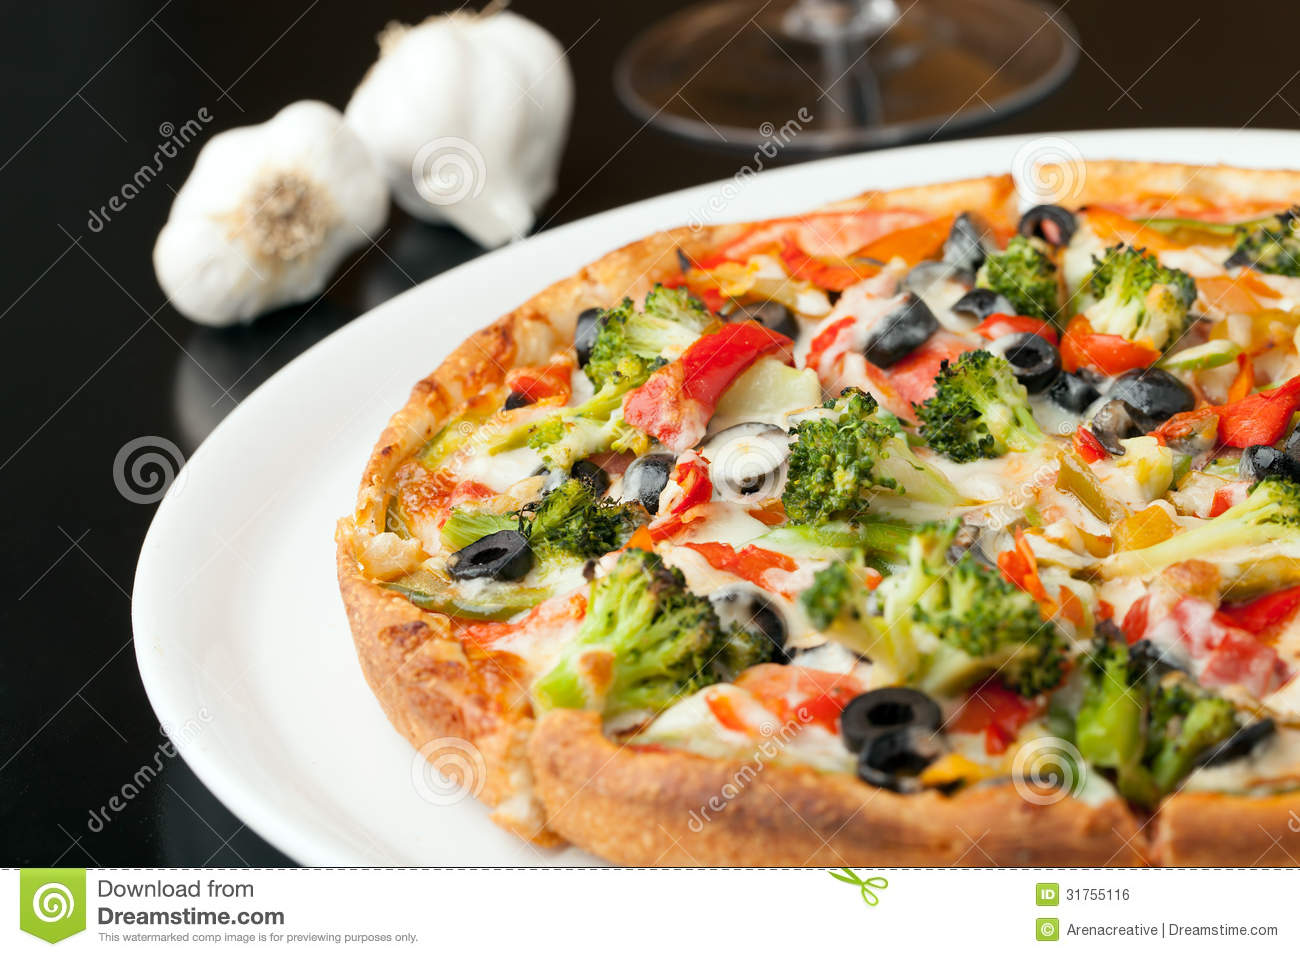 Specialty Pizza Toppings Royalty Free Stock Image - Image ...